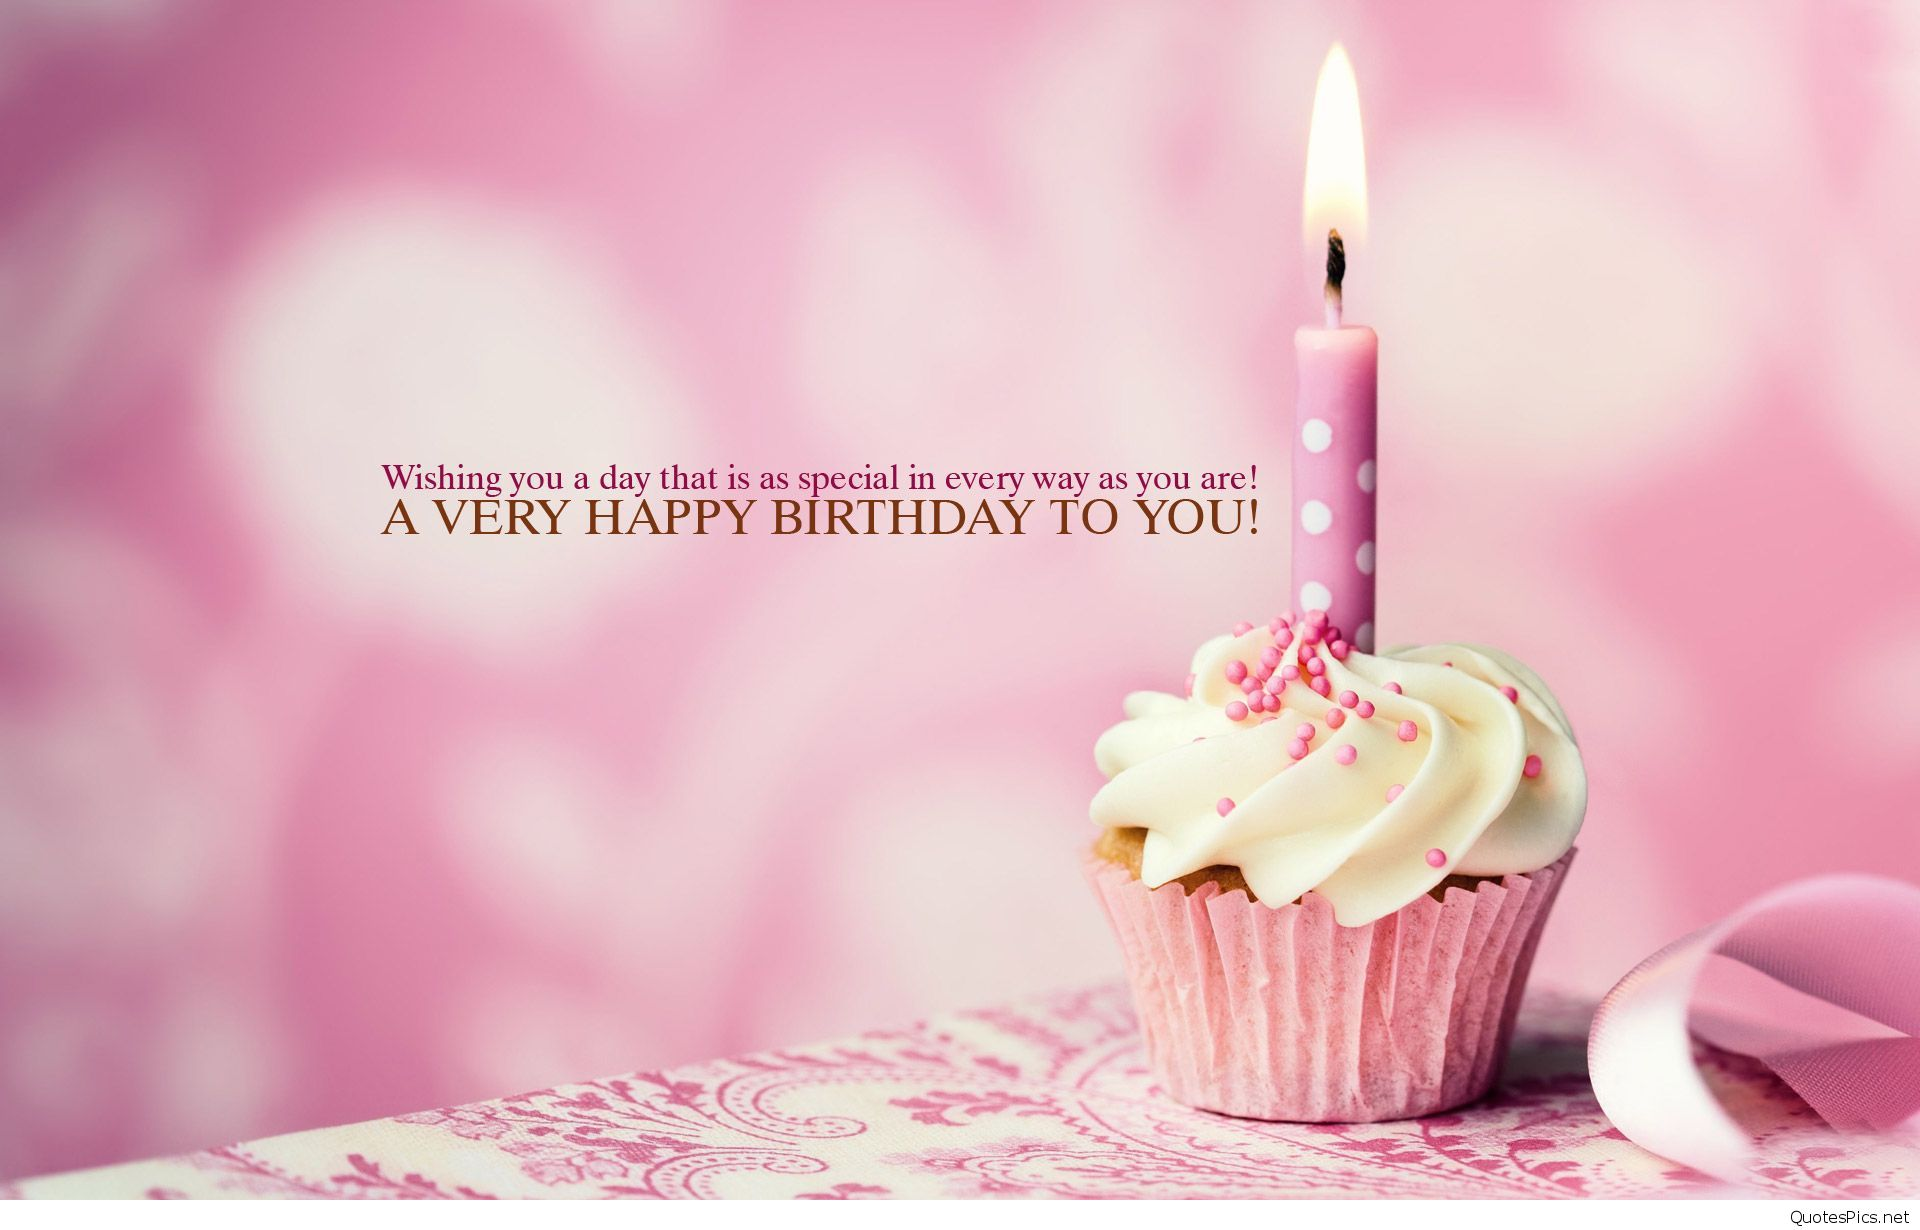 happy birthday wallpaper images ; 3572916